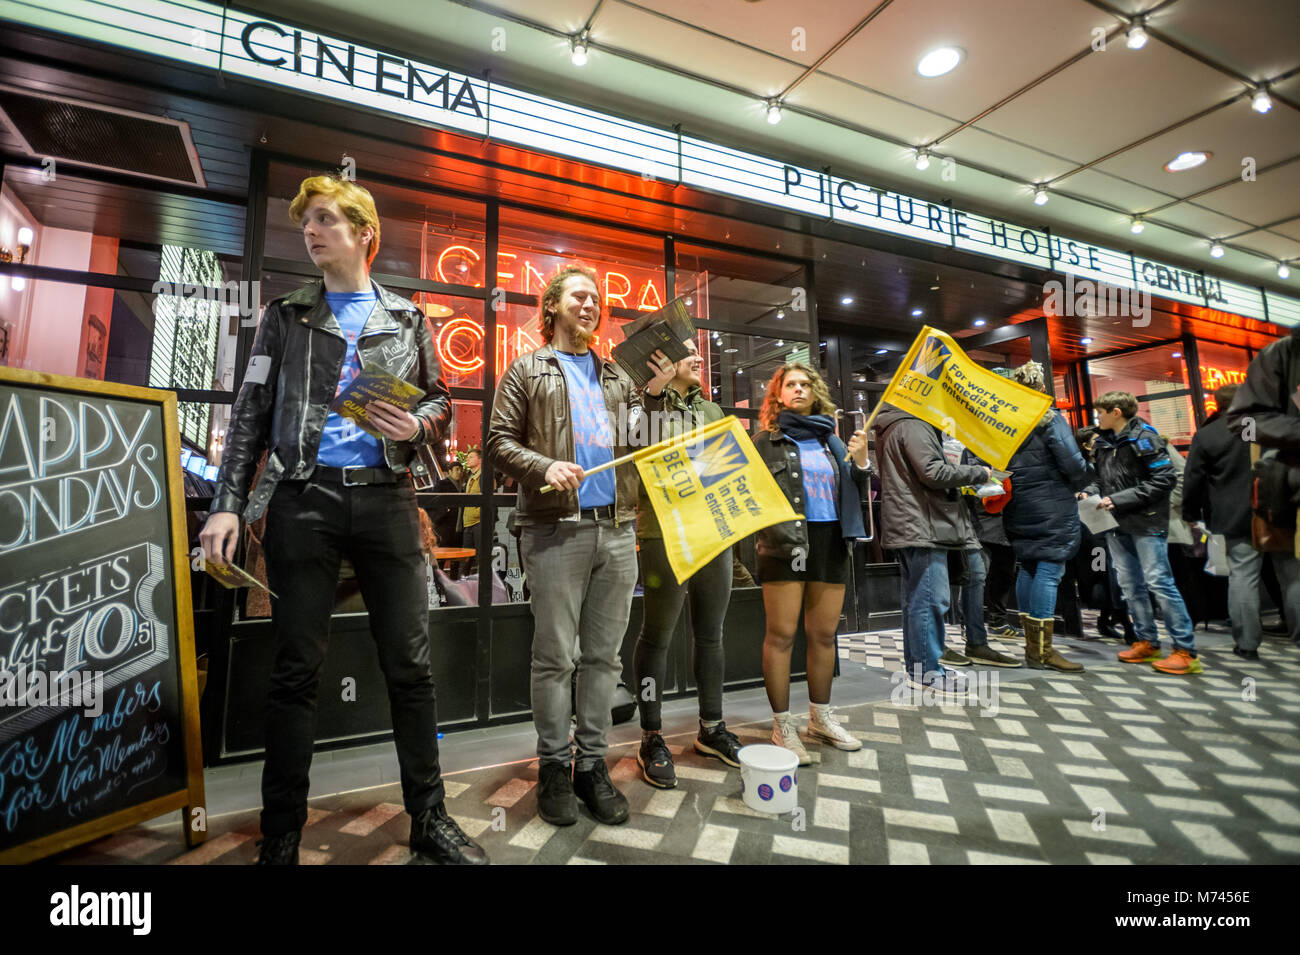 London, UK. 8th March, 2018. Striking cinema workers outside the Picturehouse Central cinema on Shaftsbury Avenue - Stock Image